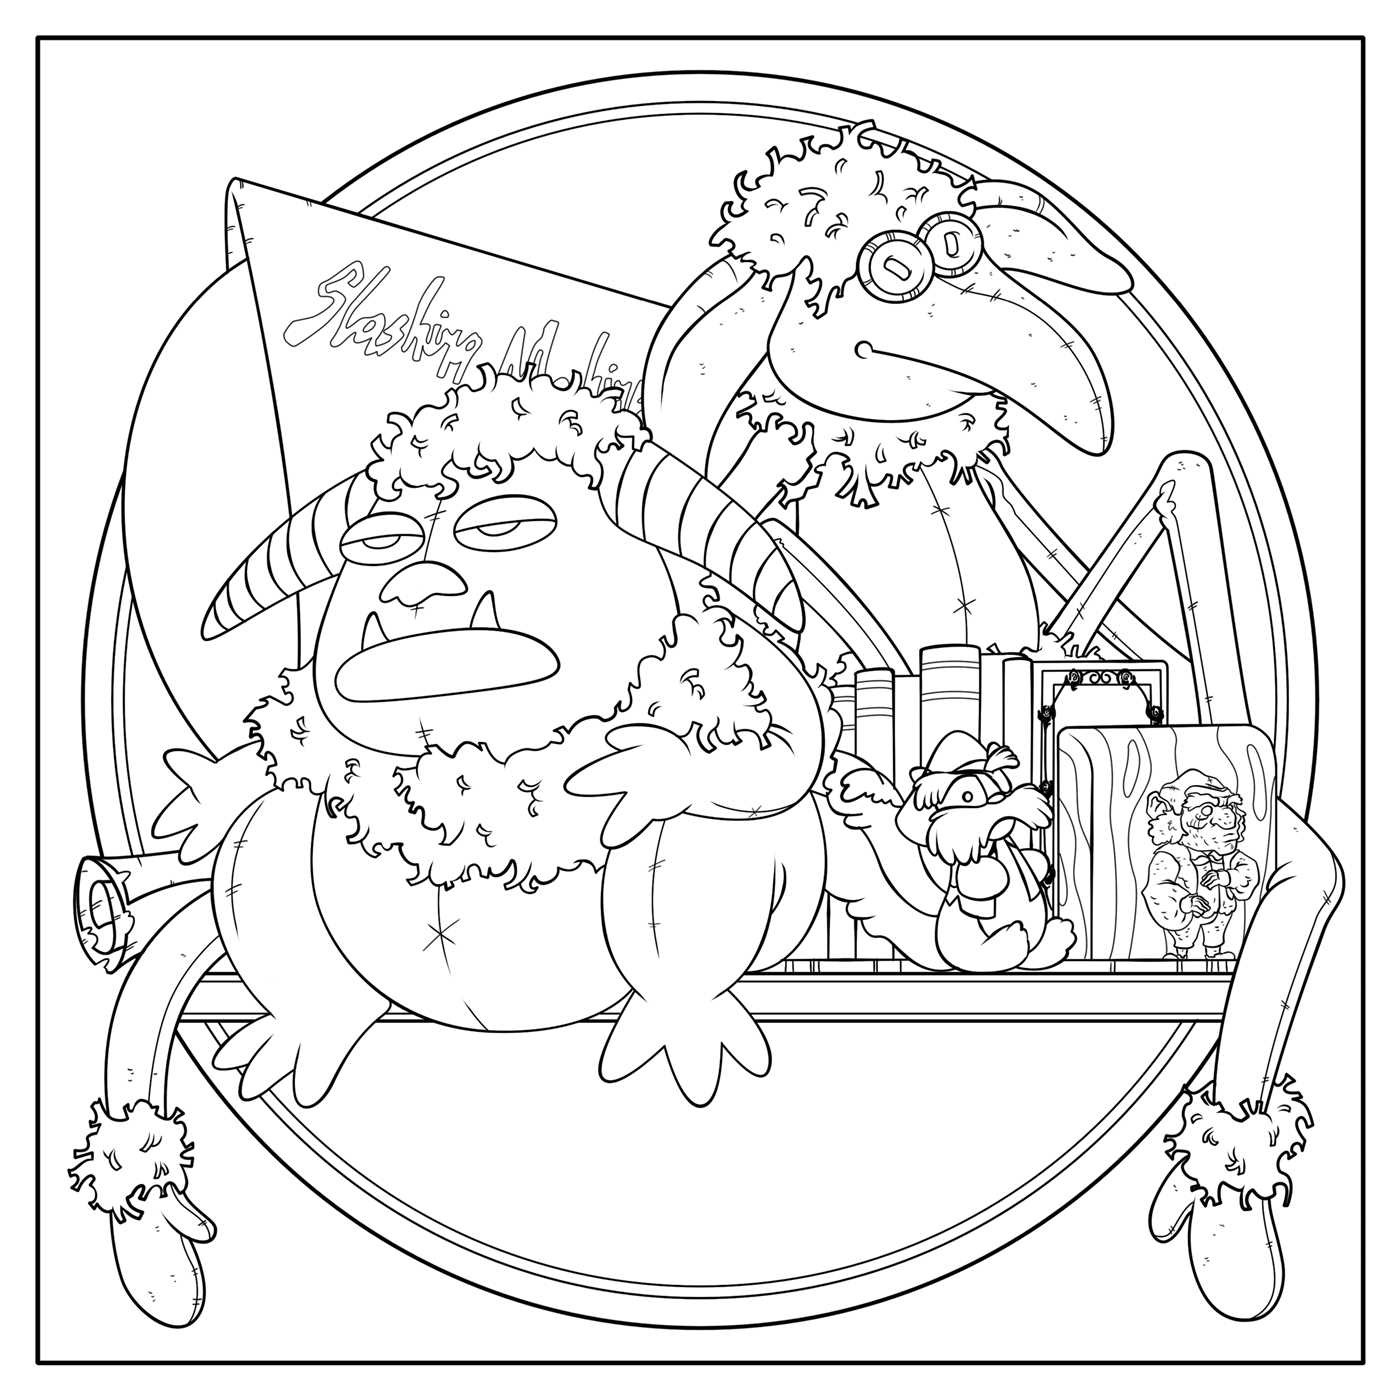 free labrynth coloring pages - photo#11